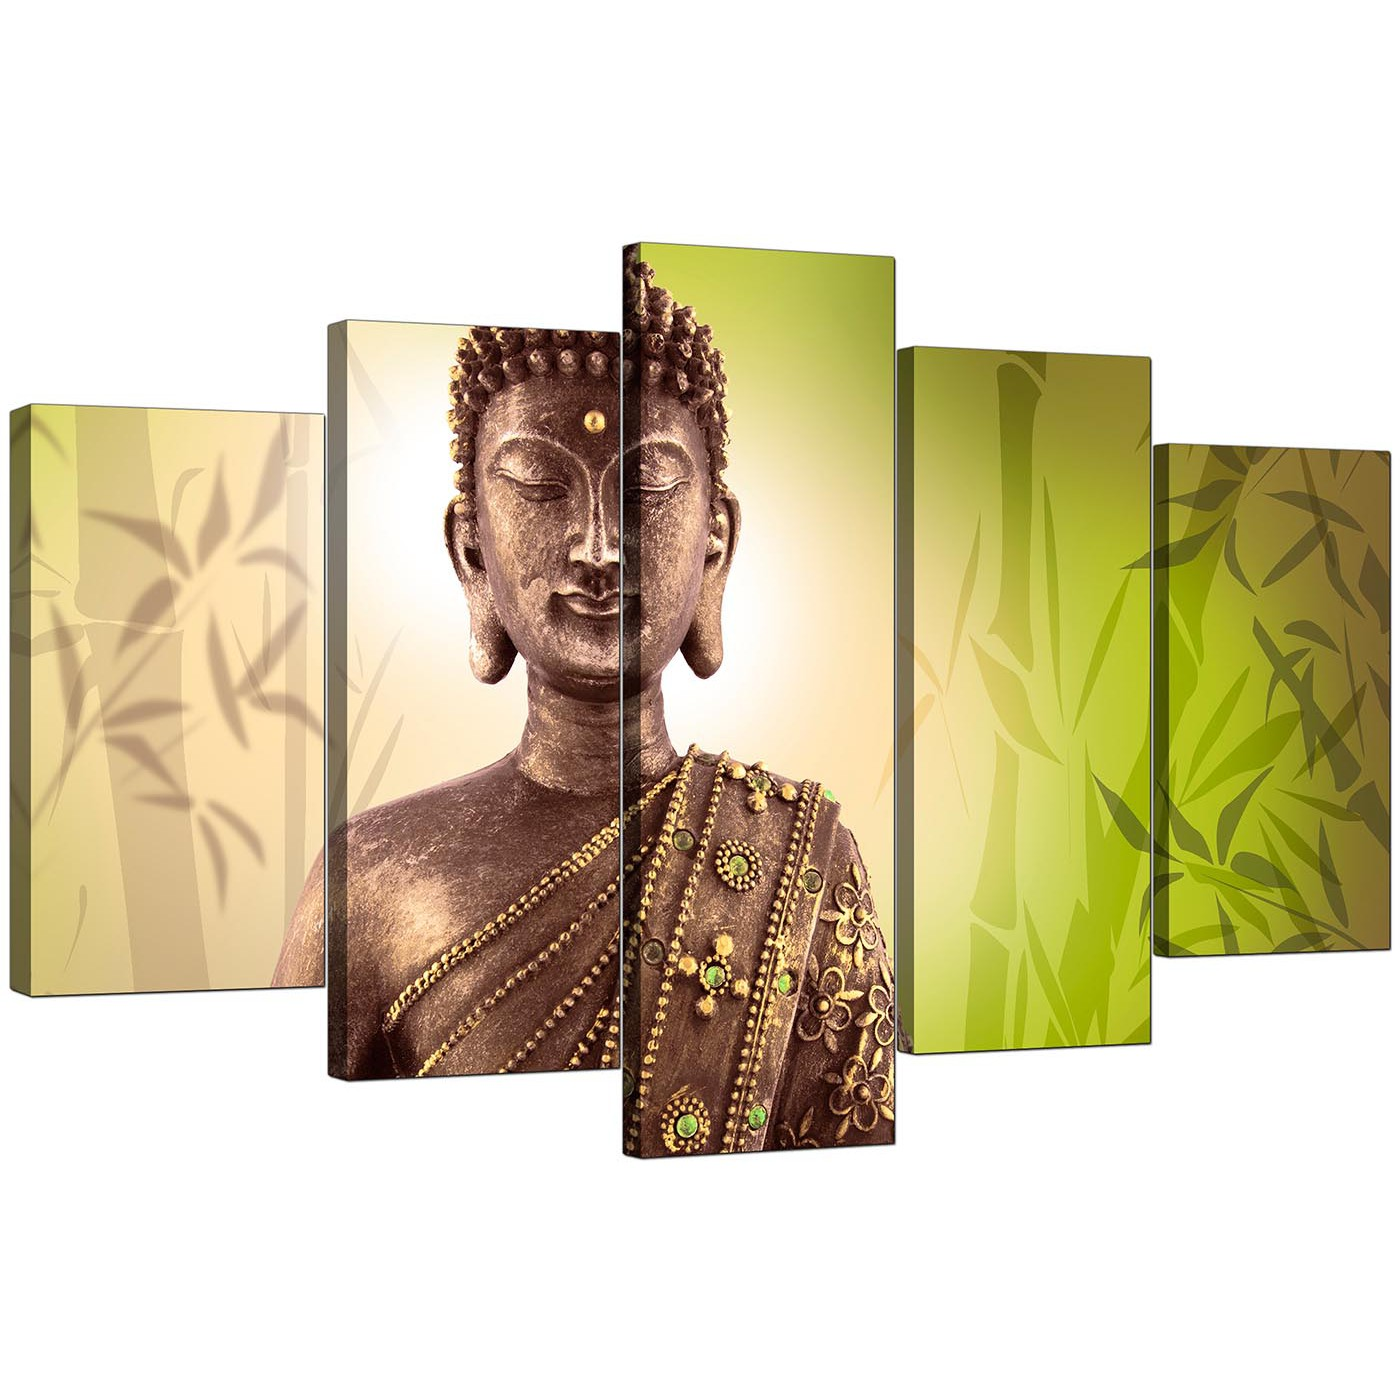 Large Canvas Prints Cheap Extra Large Buddha Canvas Wall Art 5 Piece In Green